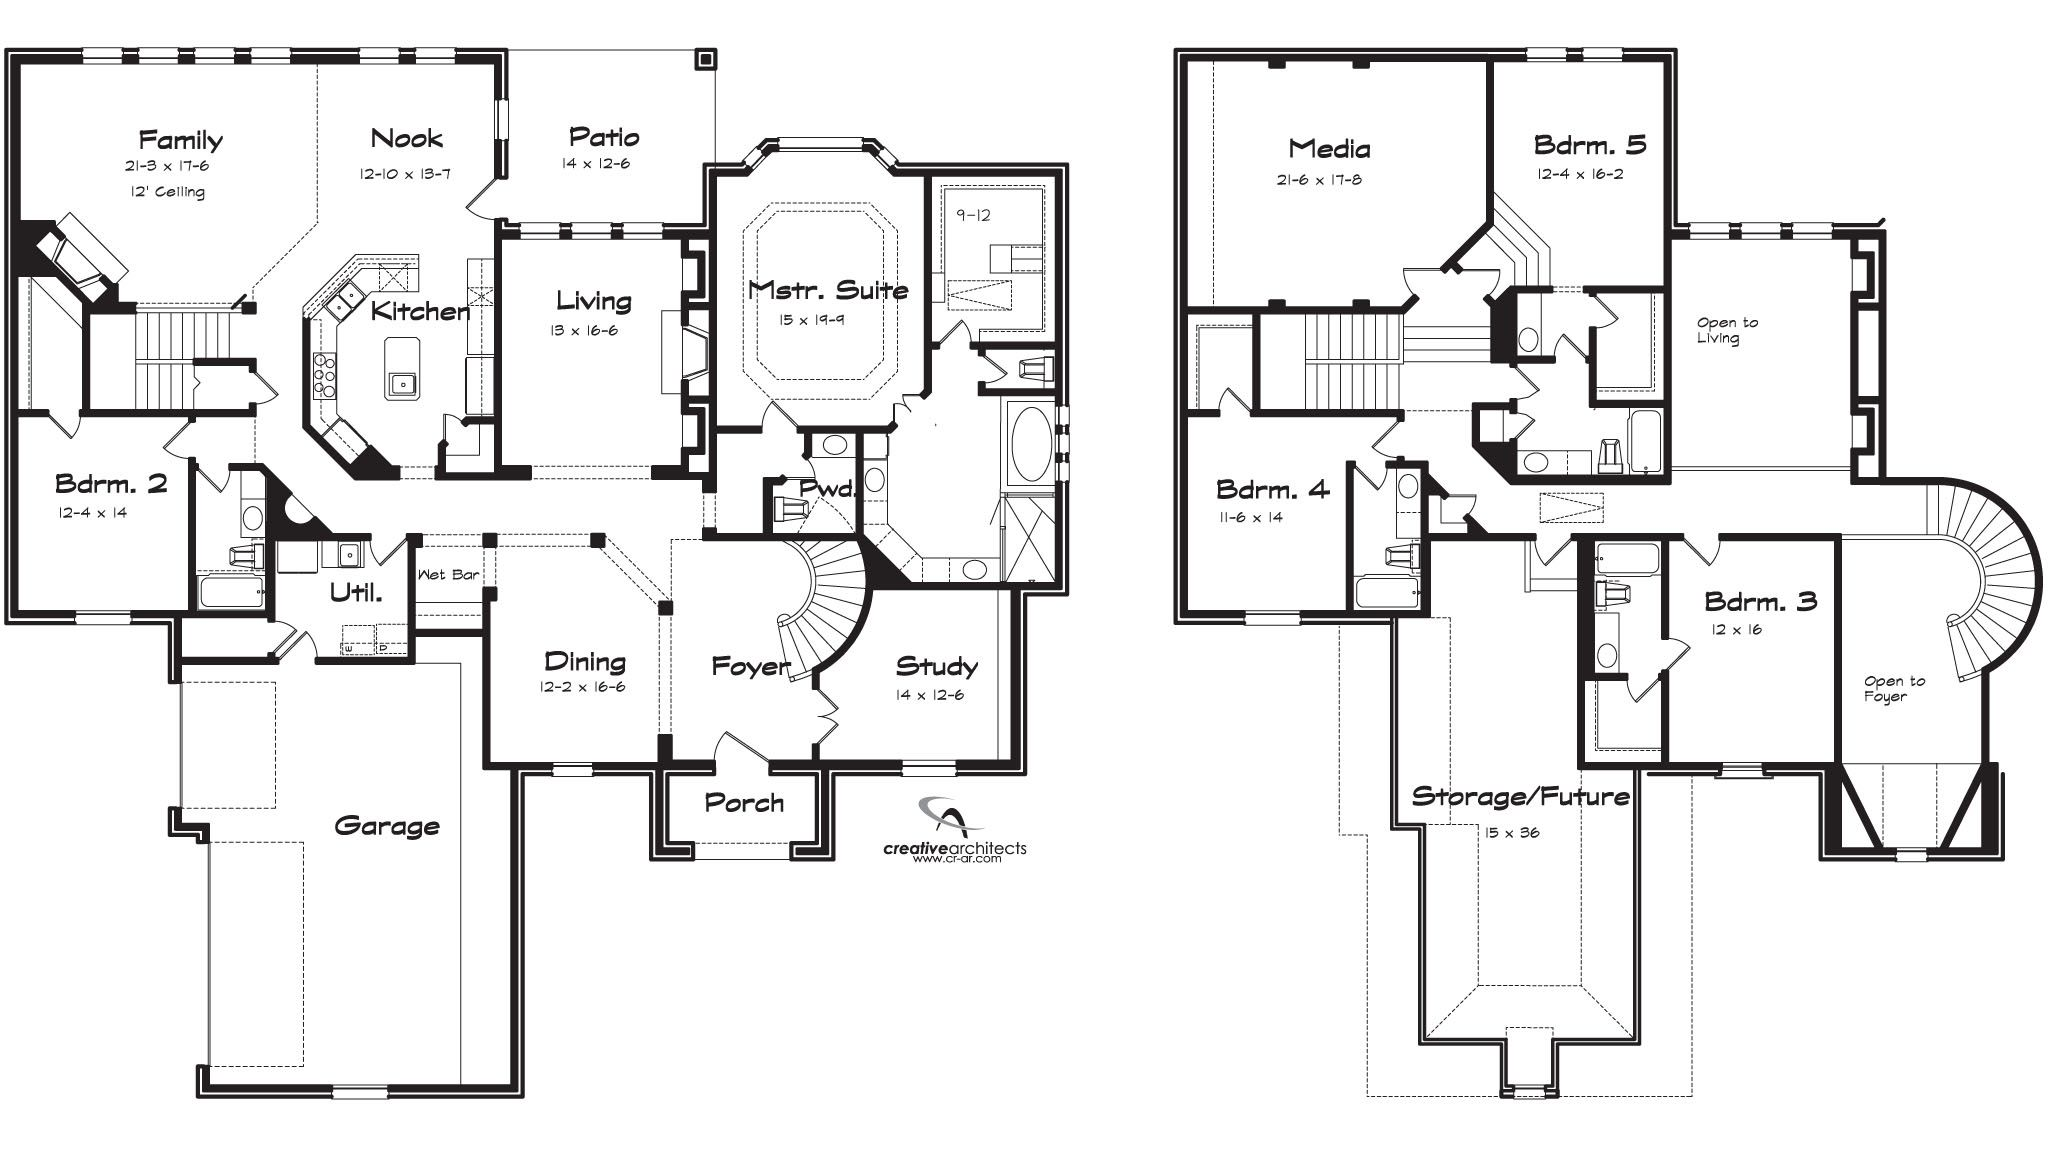 5 Bedroom House Plans Hd Pictures 4 | dream home ideas ...